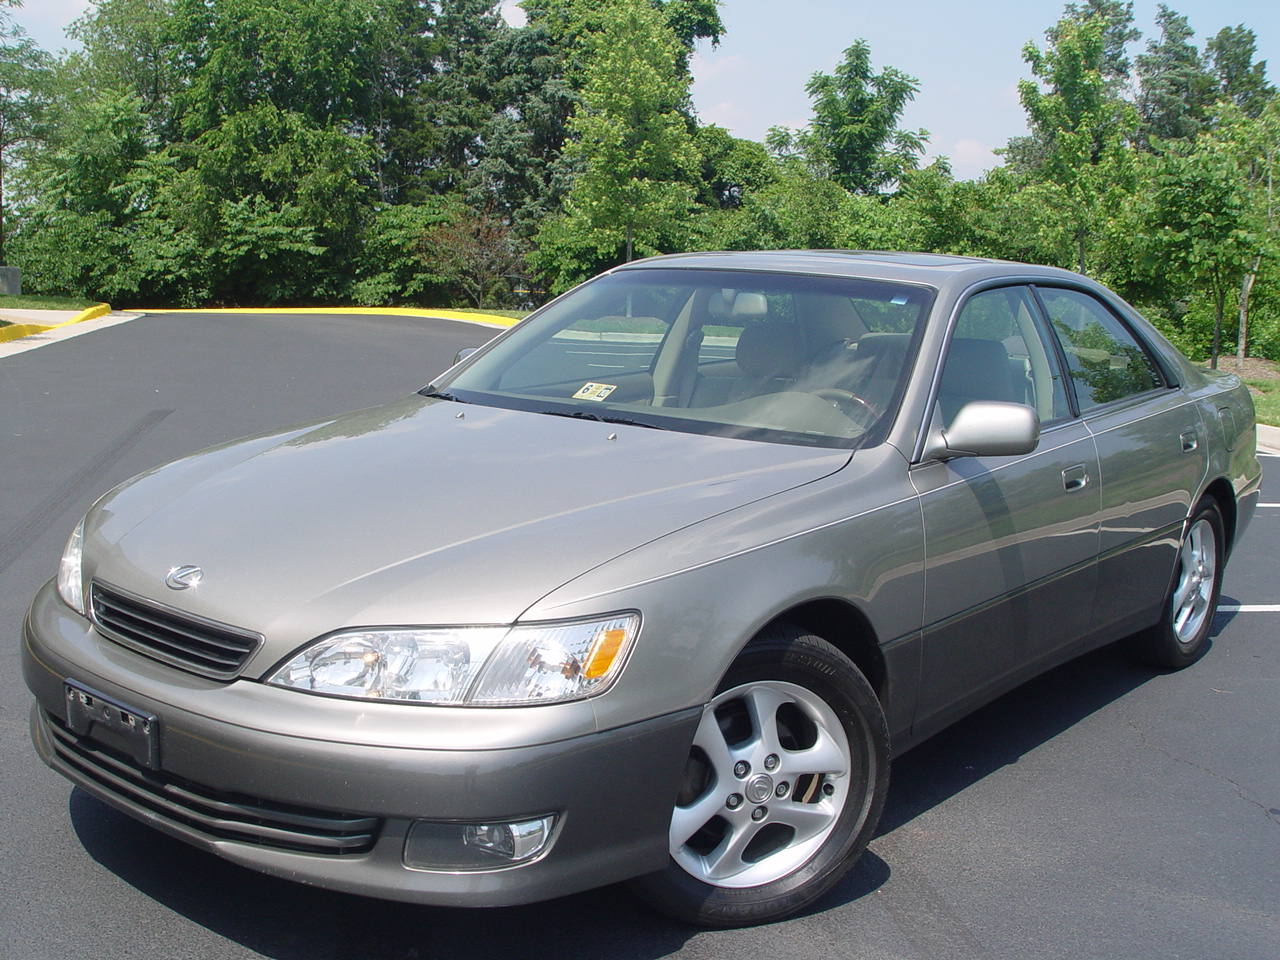 Picture of 2001 Lexus ES 300 STD